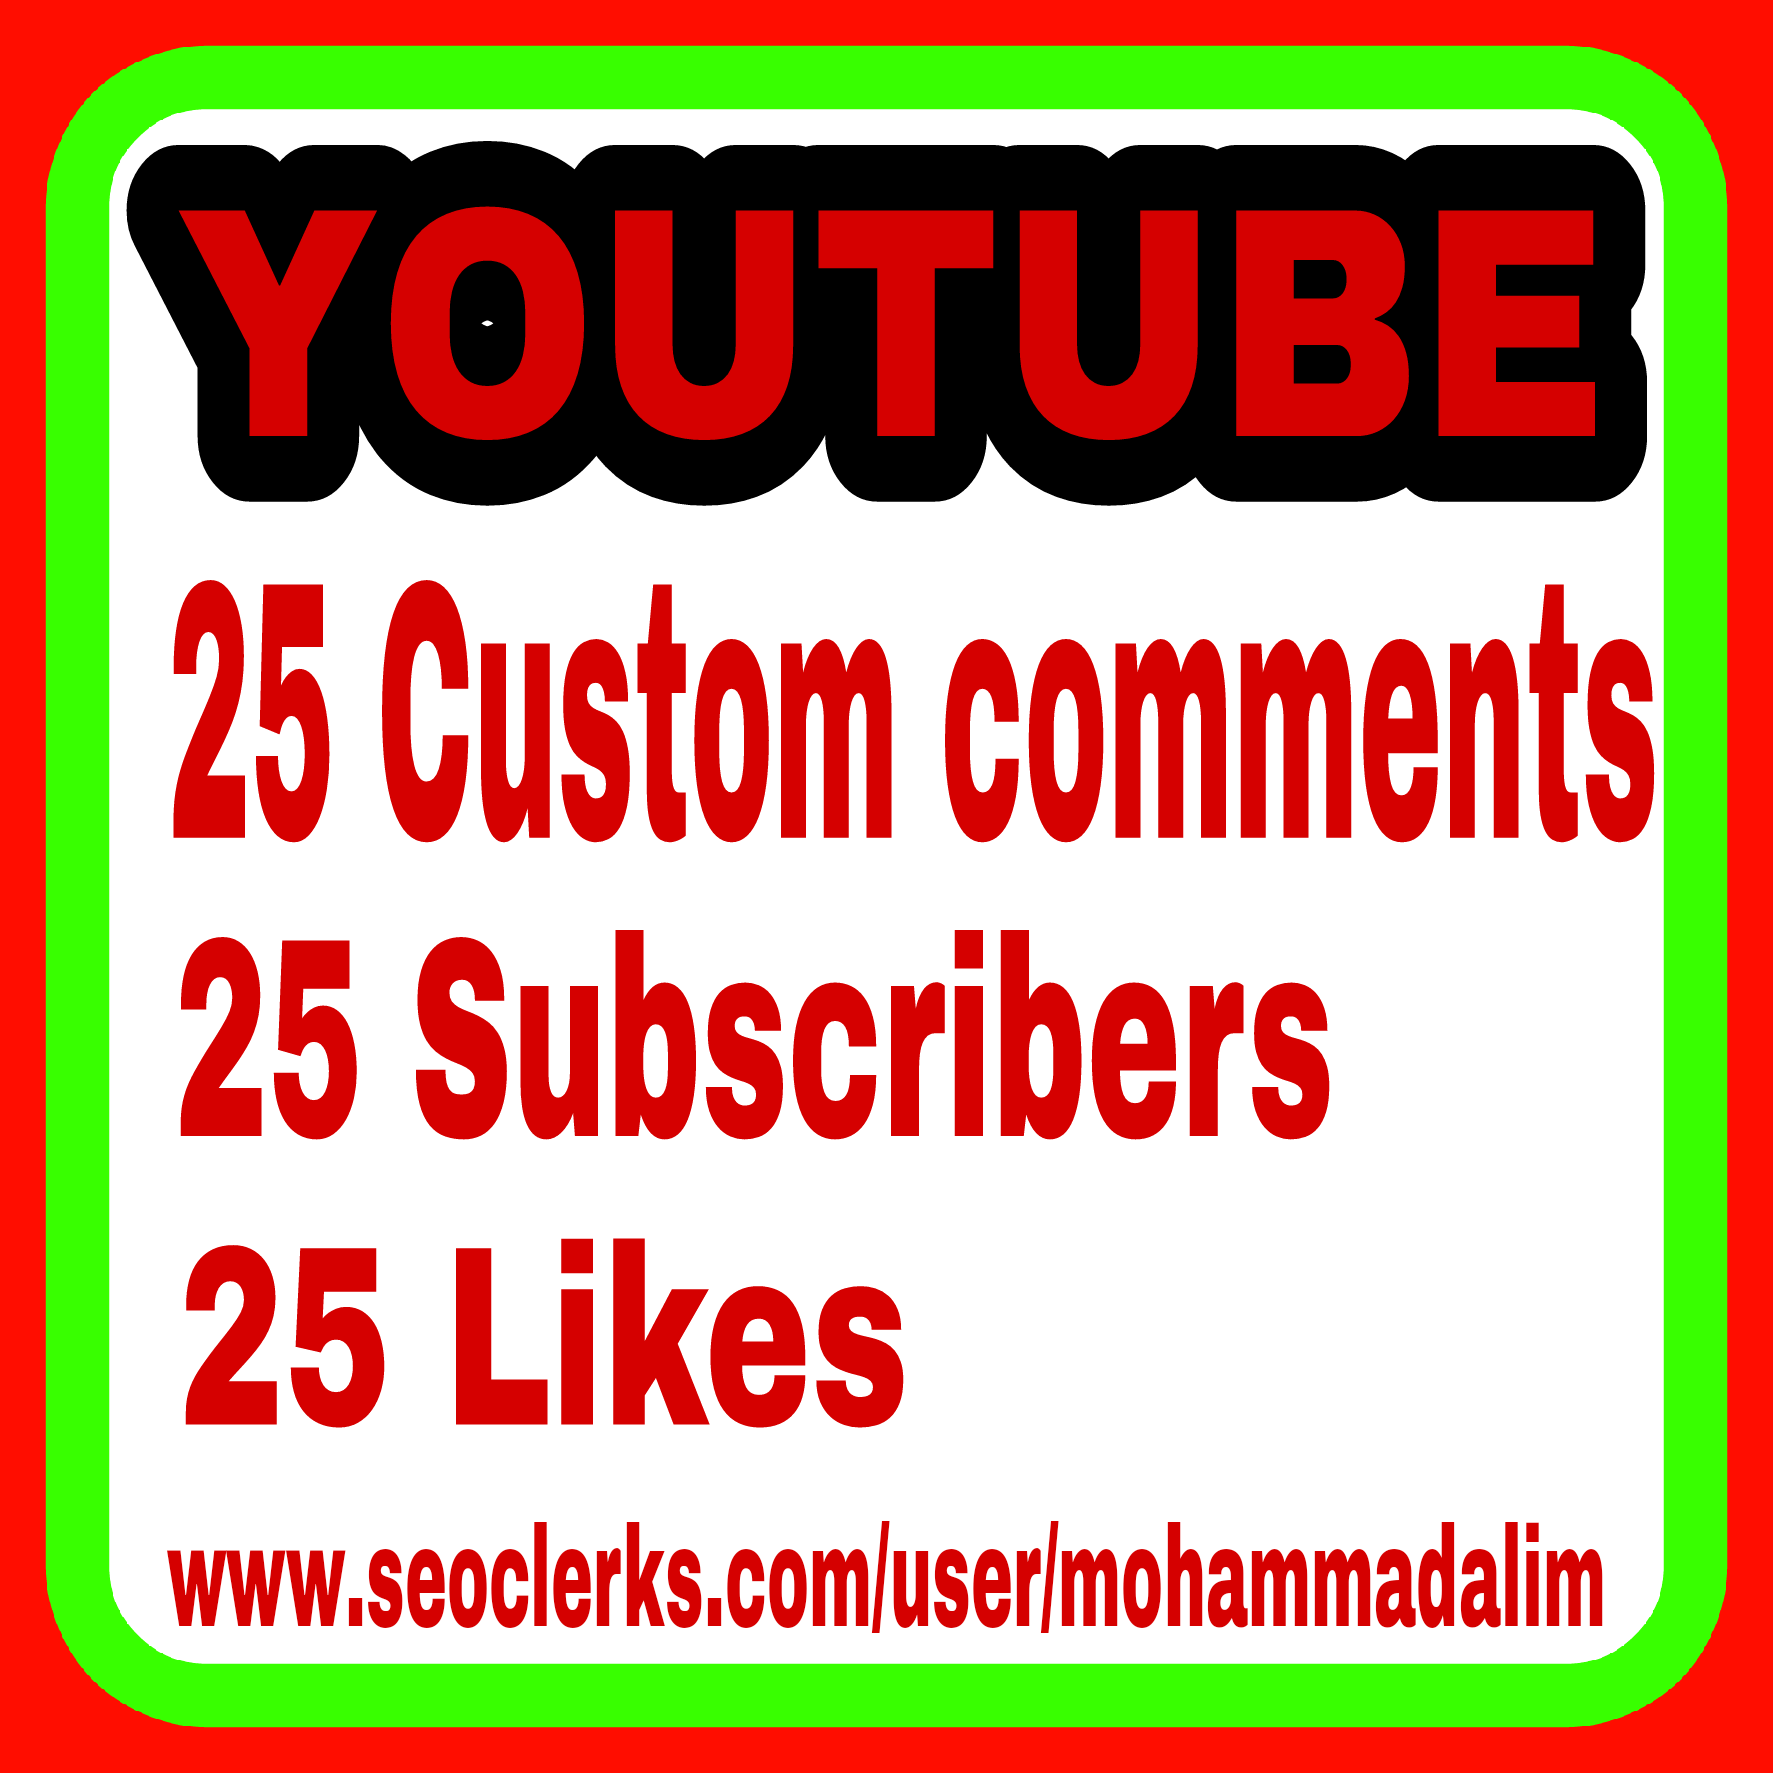 I Will give you real 25+ youtube custom comments +25 likes + 25 subscribers